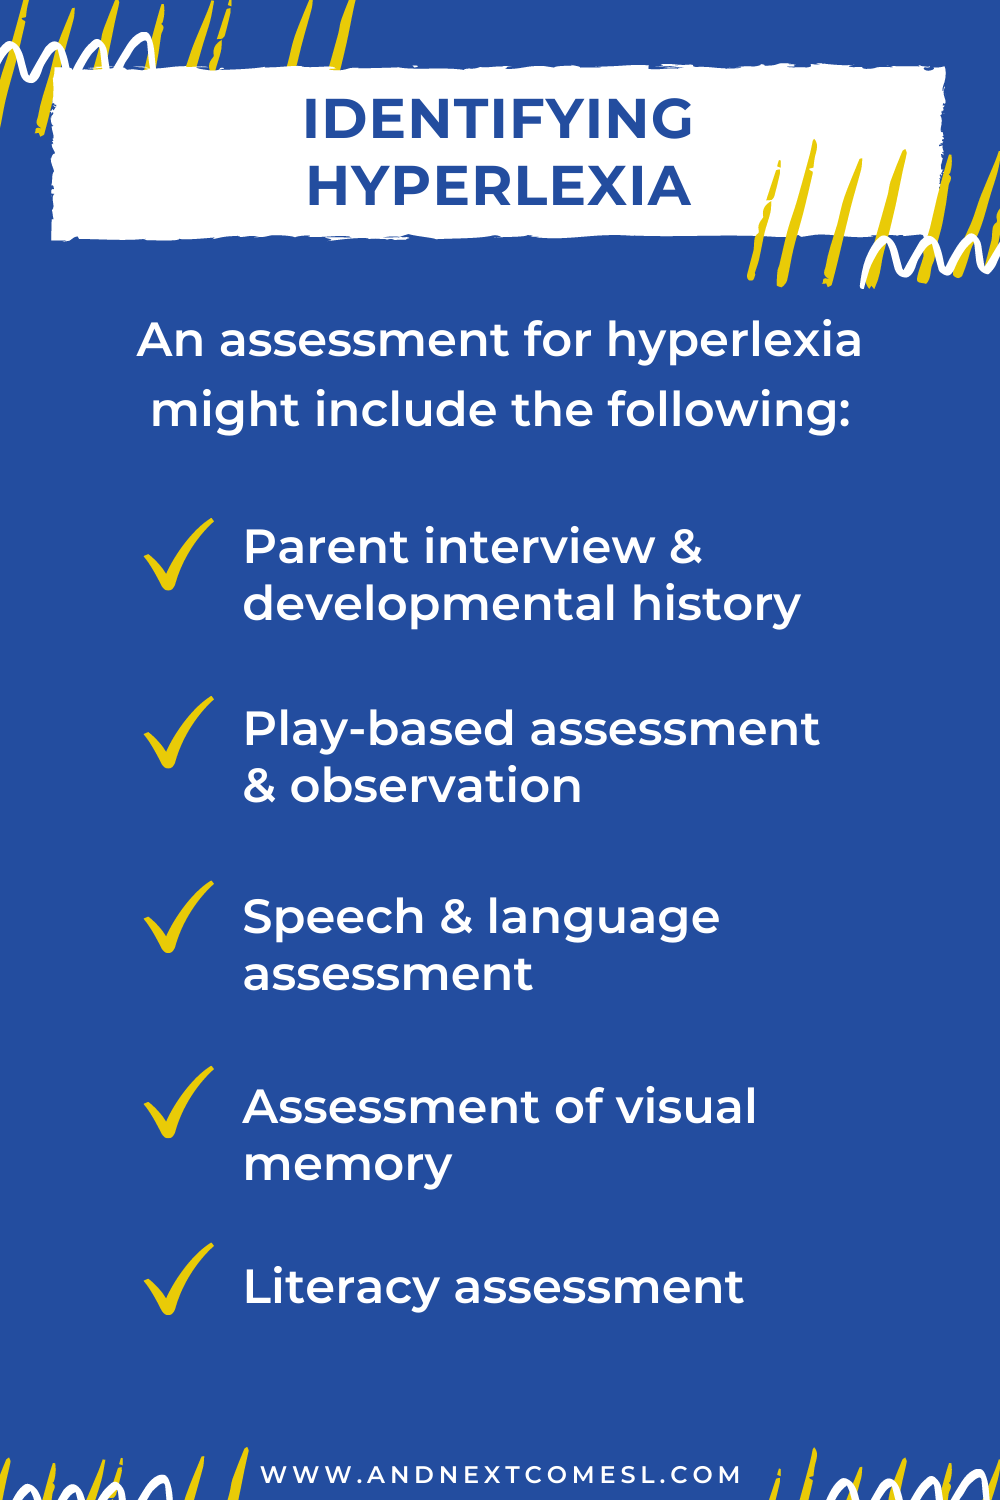 Identifying the hyperlexic child: how to diagnose hyperlexia